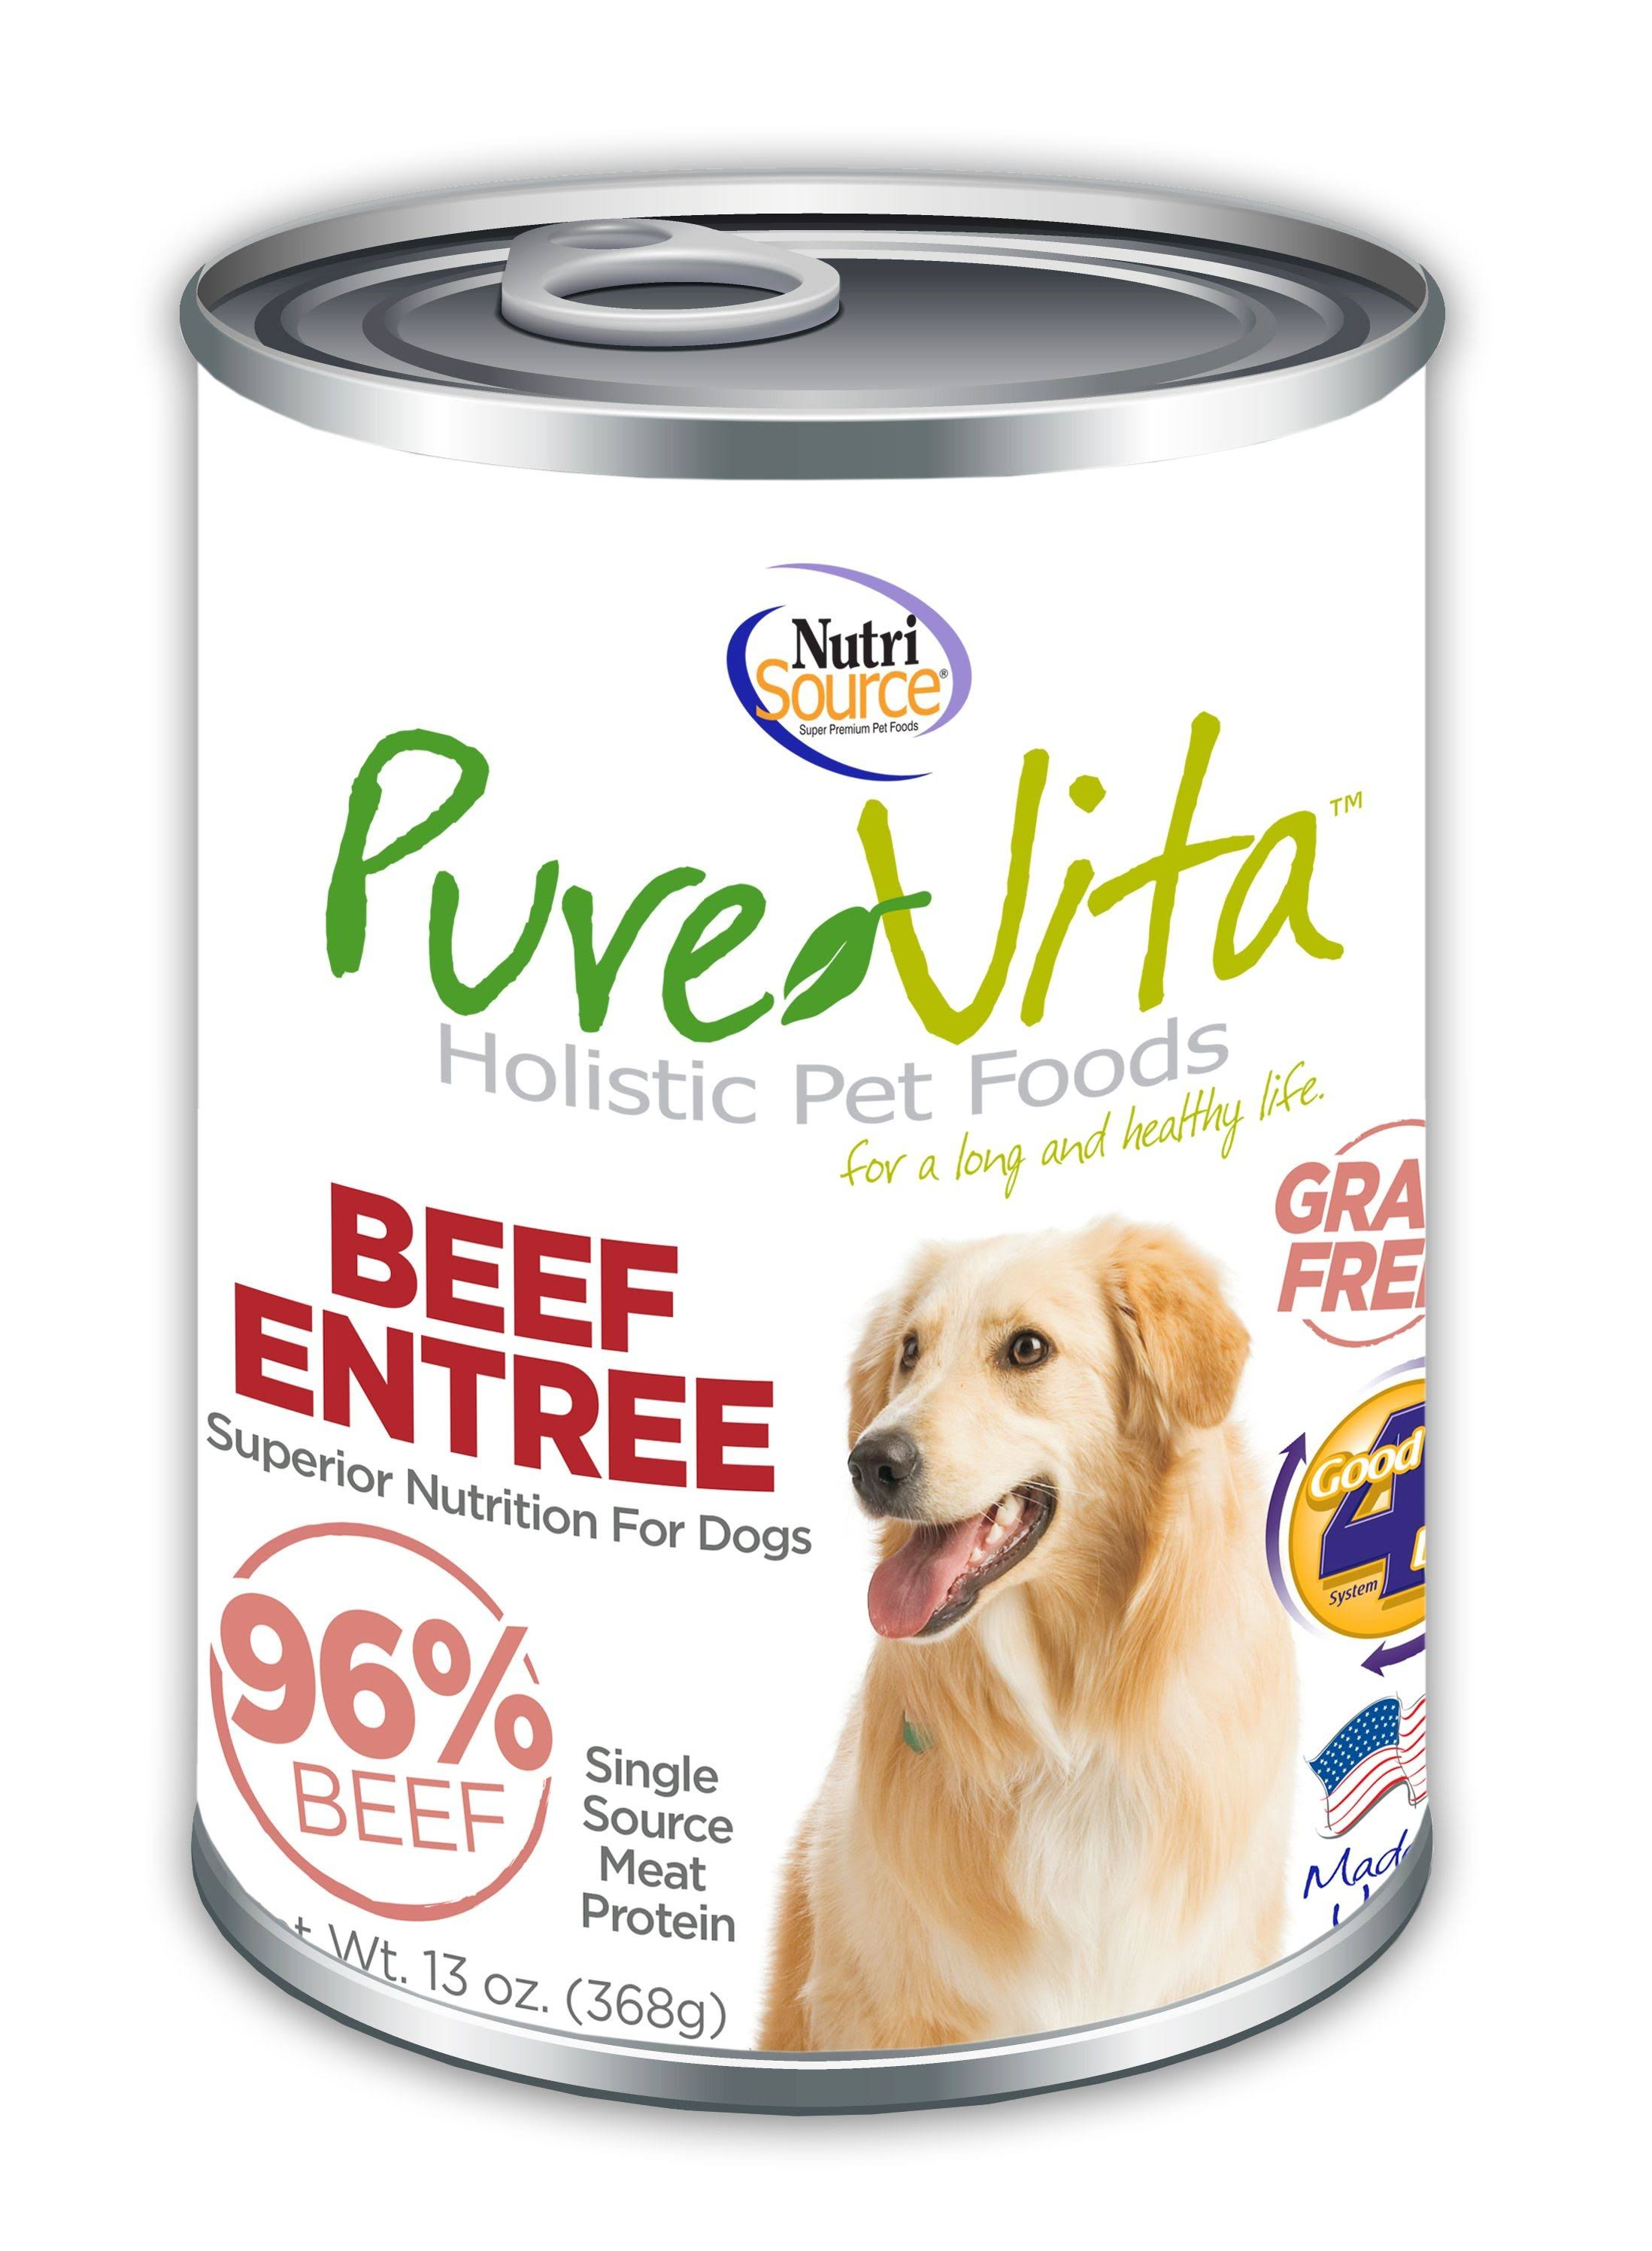 PureVita Beef Entree 96% Beef Grain-Free Wet Canned Dog Food, 13oz